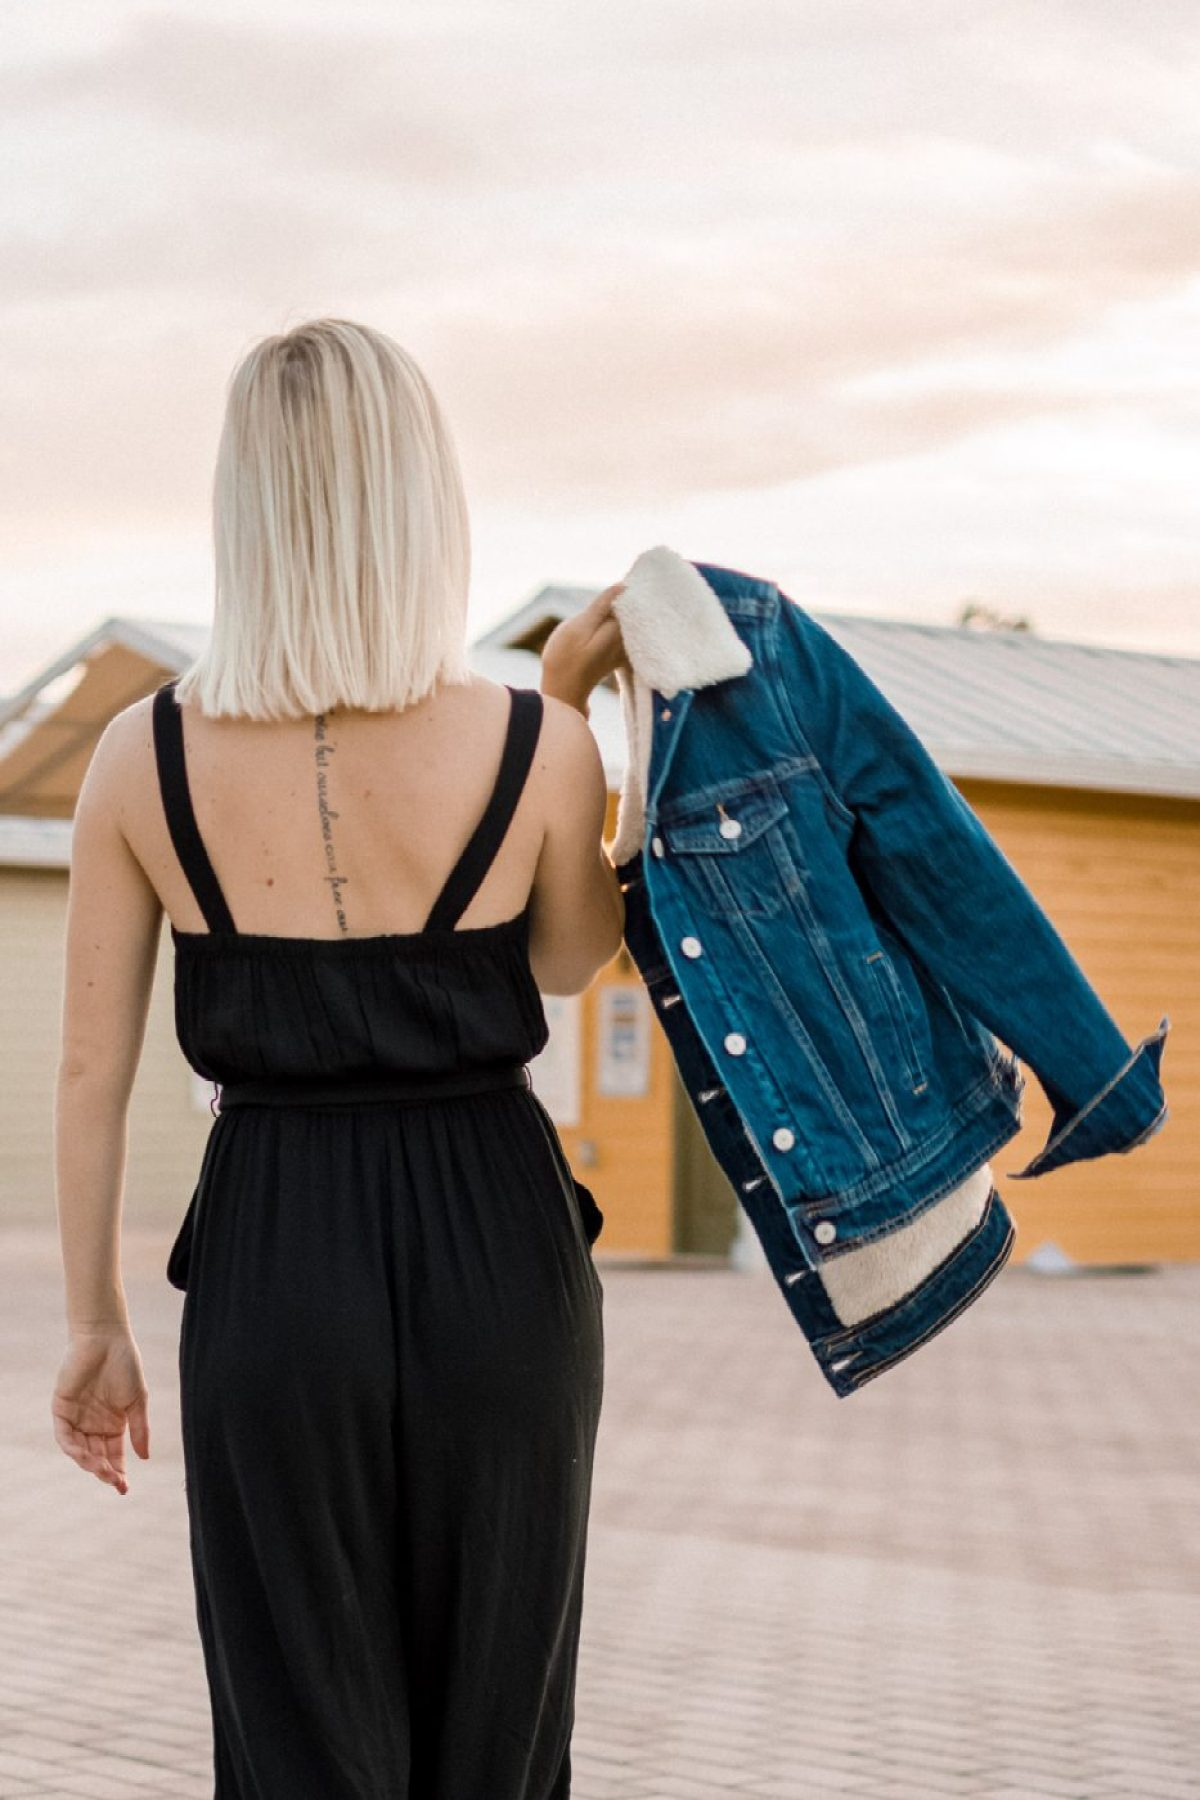 Jenny Bess of Sweet Teal for Old Navy with Sherpa Jean Jacket